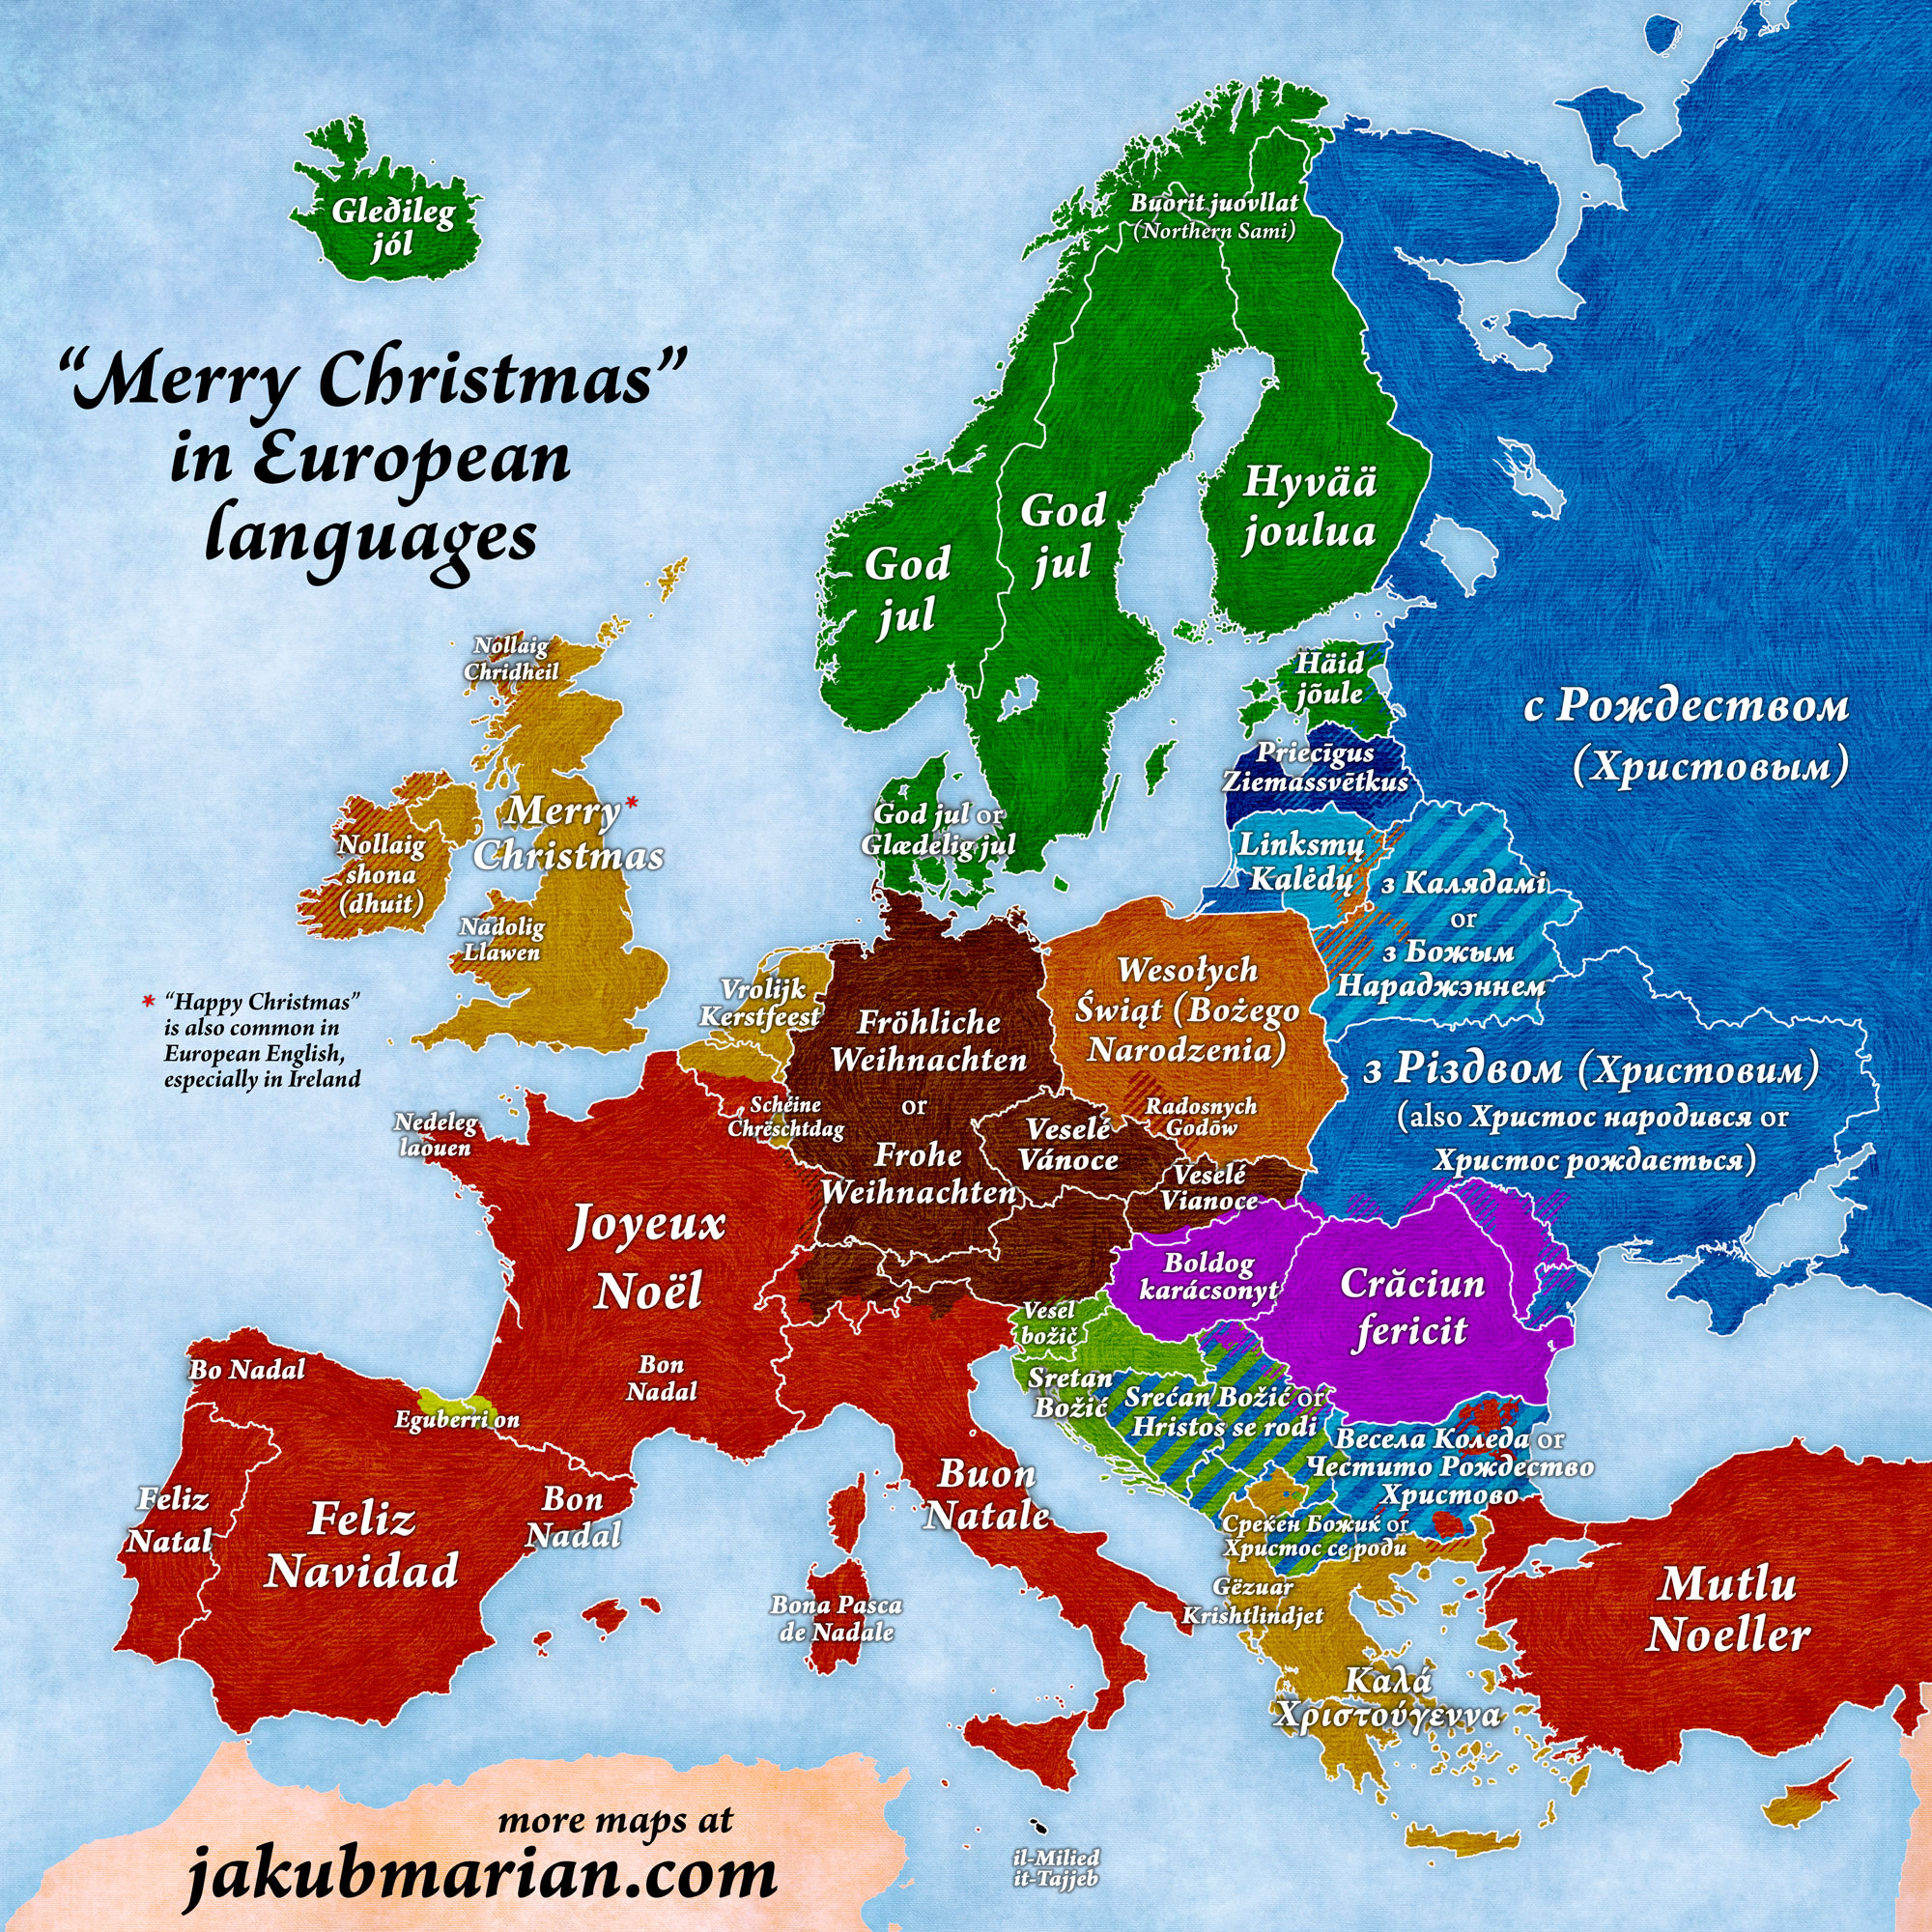 Buon Natale Meaning In English.Merry Christmas In European Languages